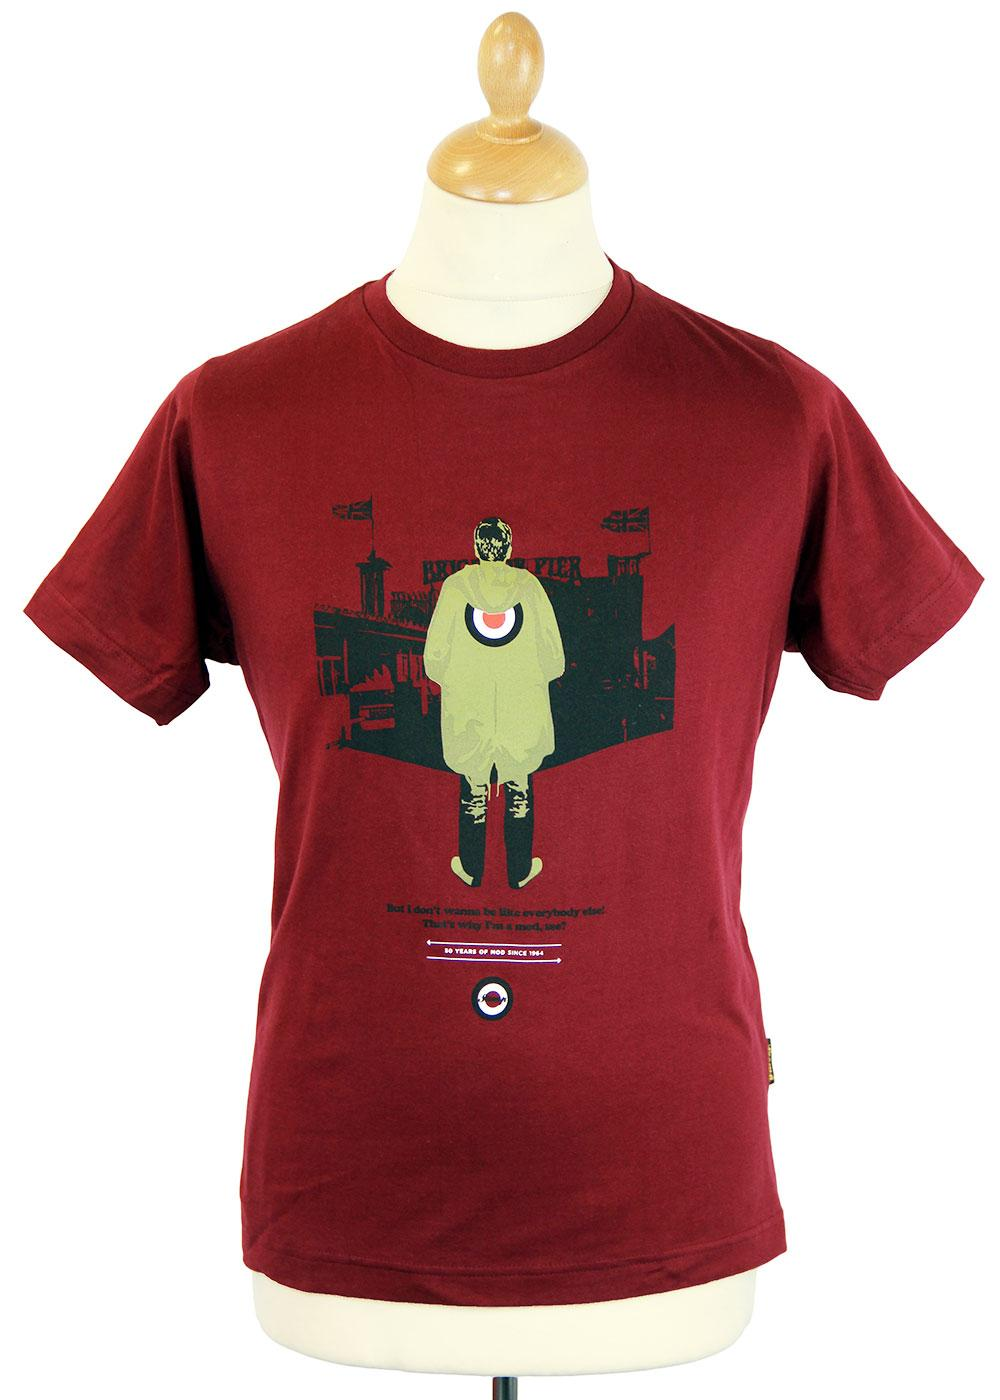 acfa9fe8d5 STOMP I m a Mod Retro 50 Years of Mod Scooter T-Shirt in Burgundy